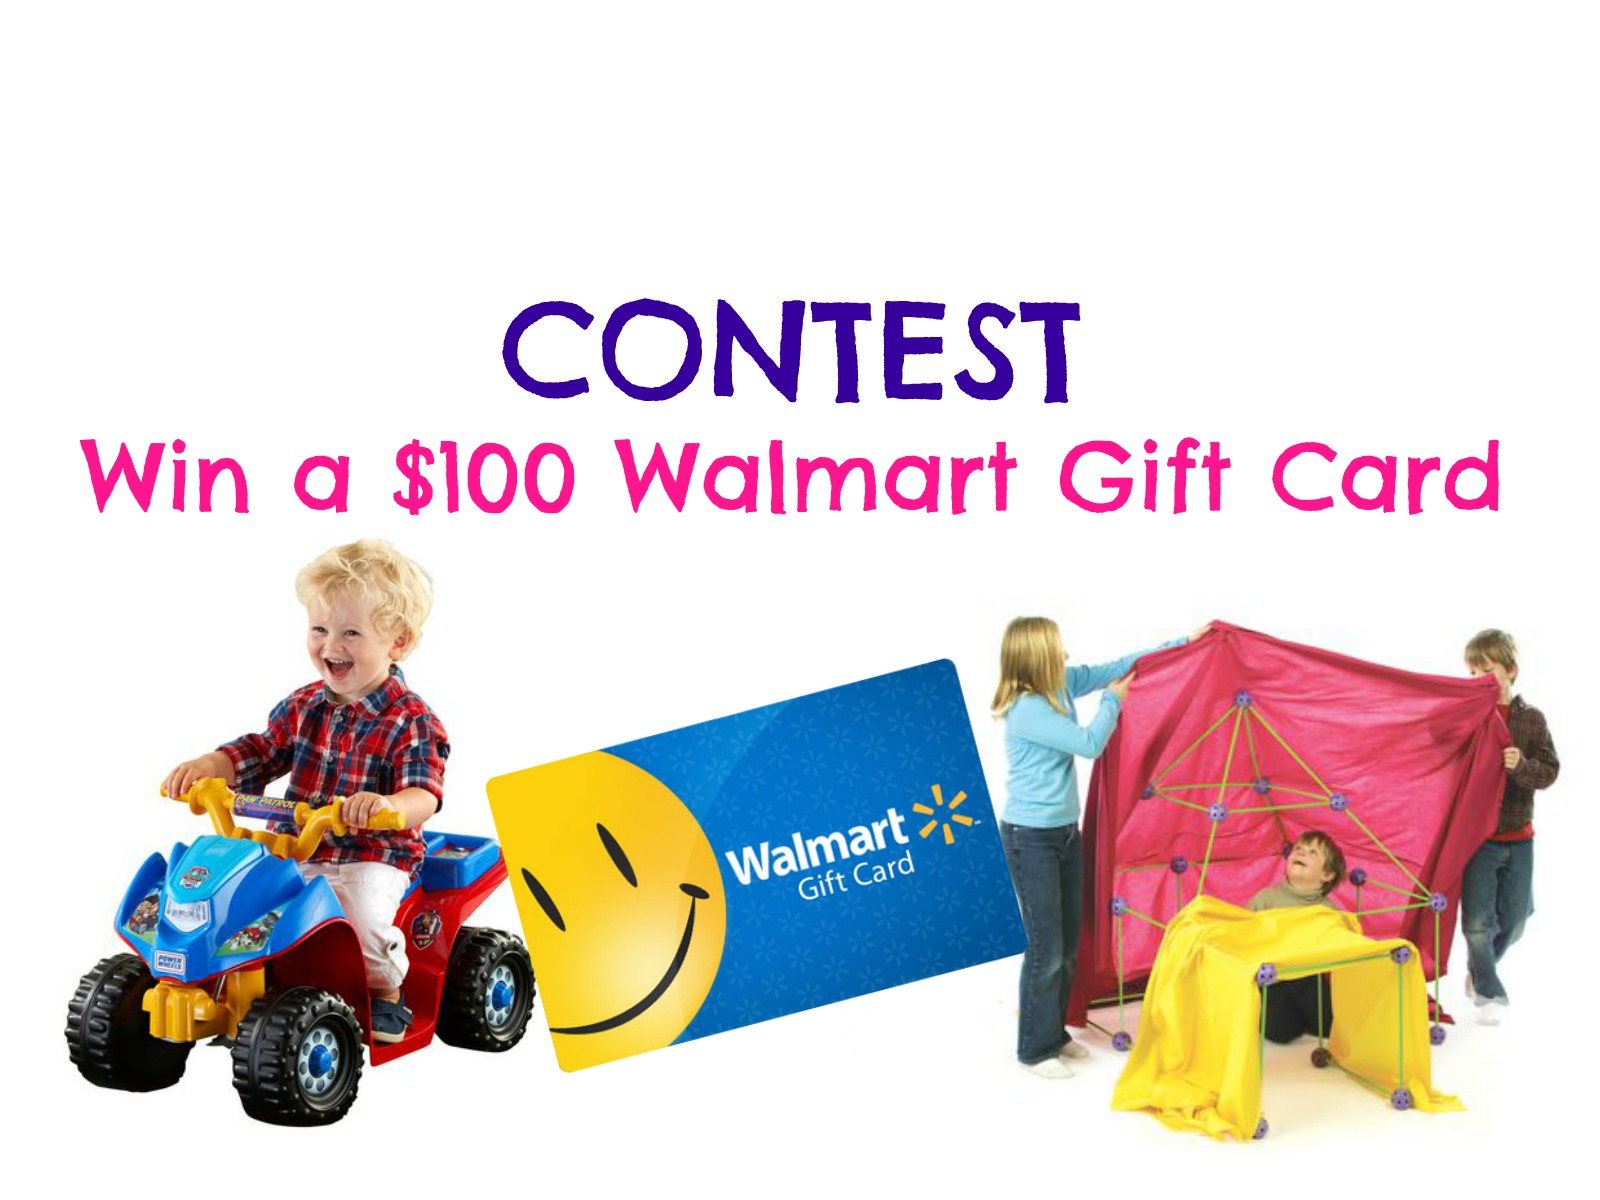 CONTEST: Win a $100 Walmart Gift Card